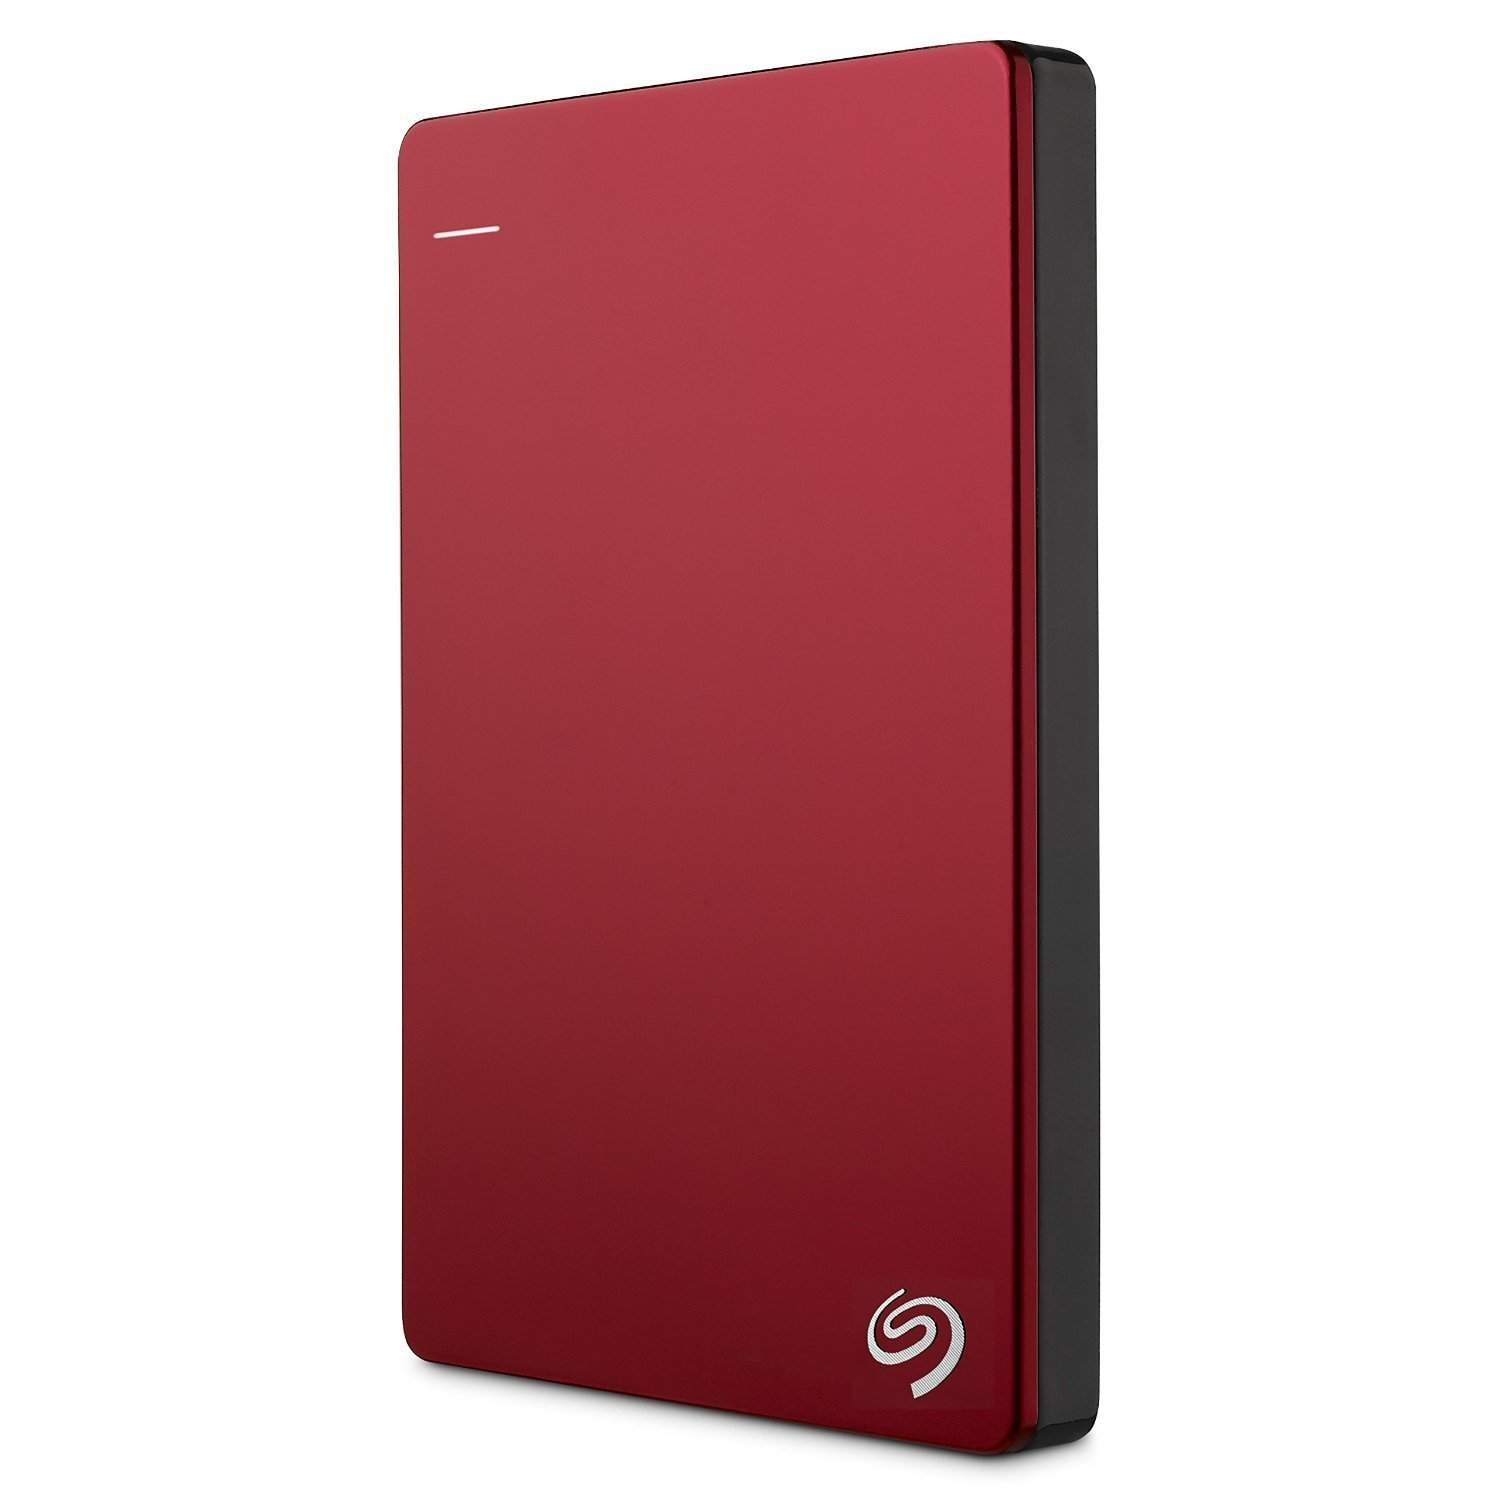 Seagate Backup Plus Slim 1TB Portable External Hard Drive With 200GB Of Cloud Storage & Mobile Device Backup (Red)